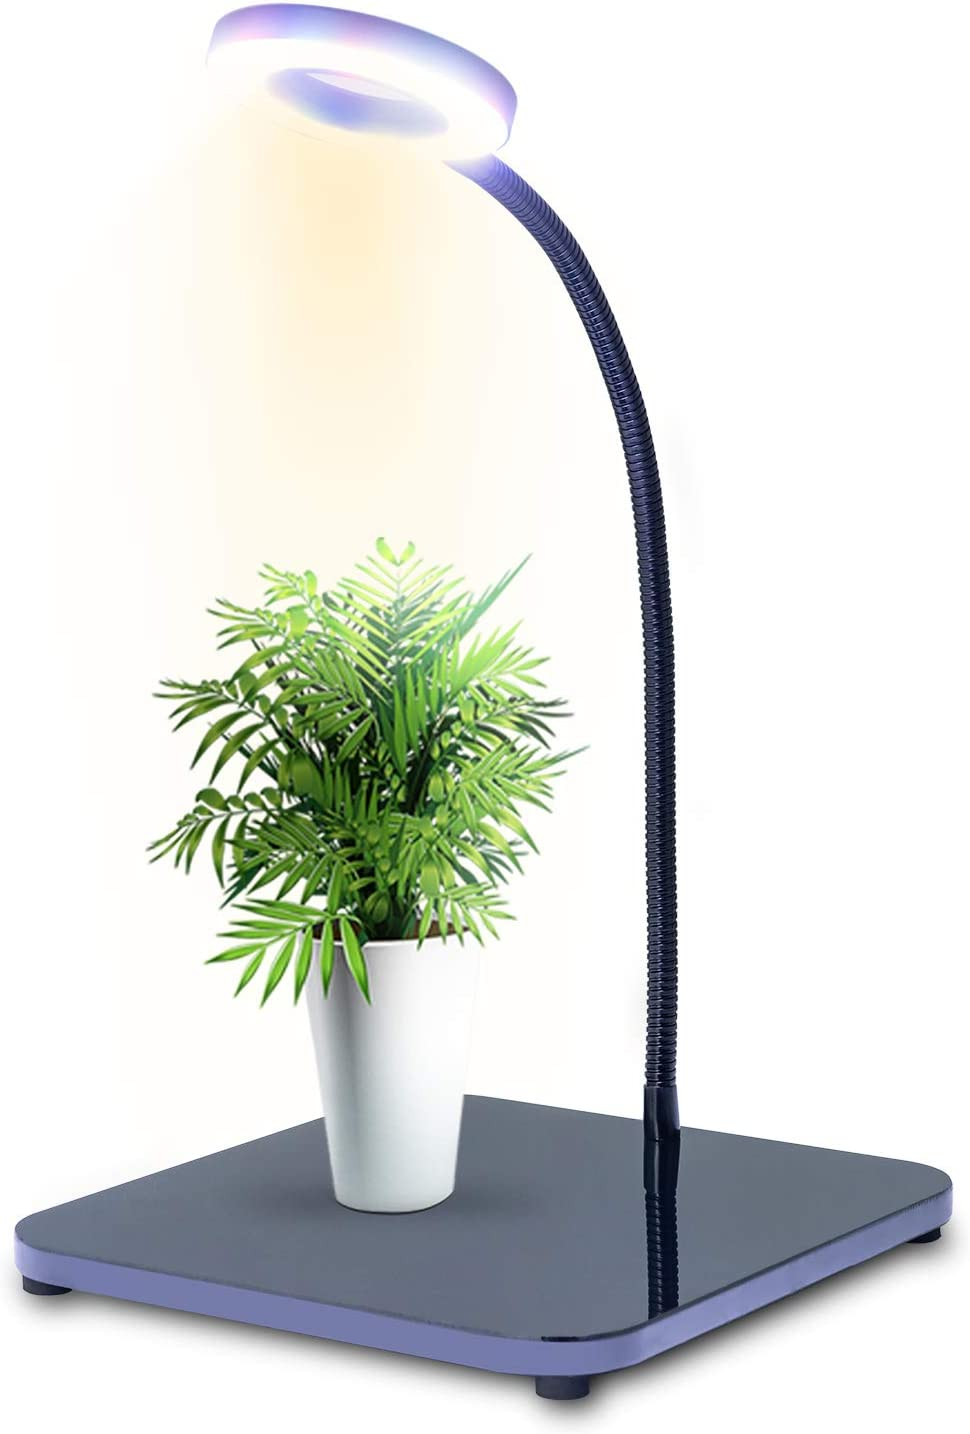 Grow Light for Indoor Plants Red Blue White Spectrum LED Plant Grow Lamp with Adjustable Gooseneck Auto Off 3/6/12/24Hrs Timer Seedling Blooming Office Mini Grow Light,Black,40W,QUDO-GL-01BL